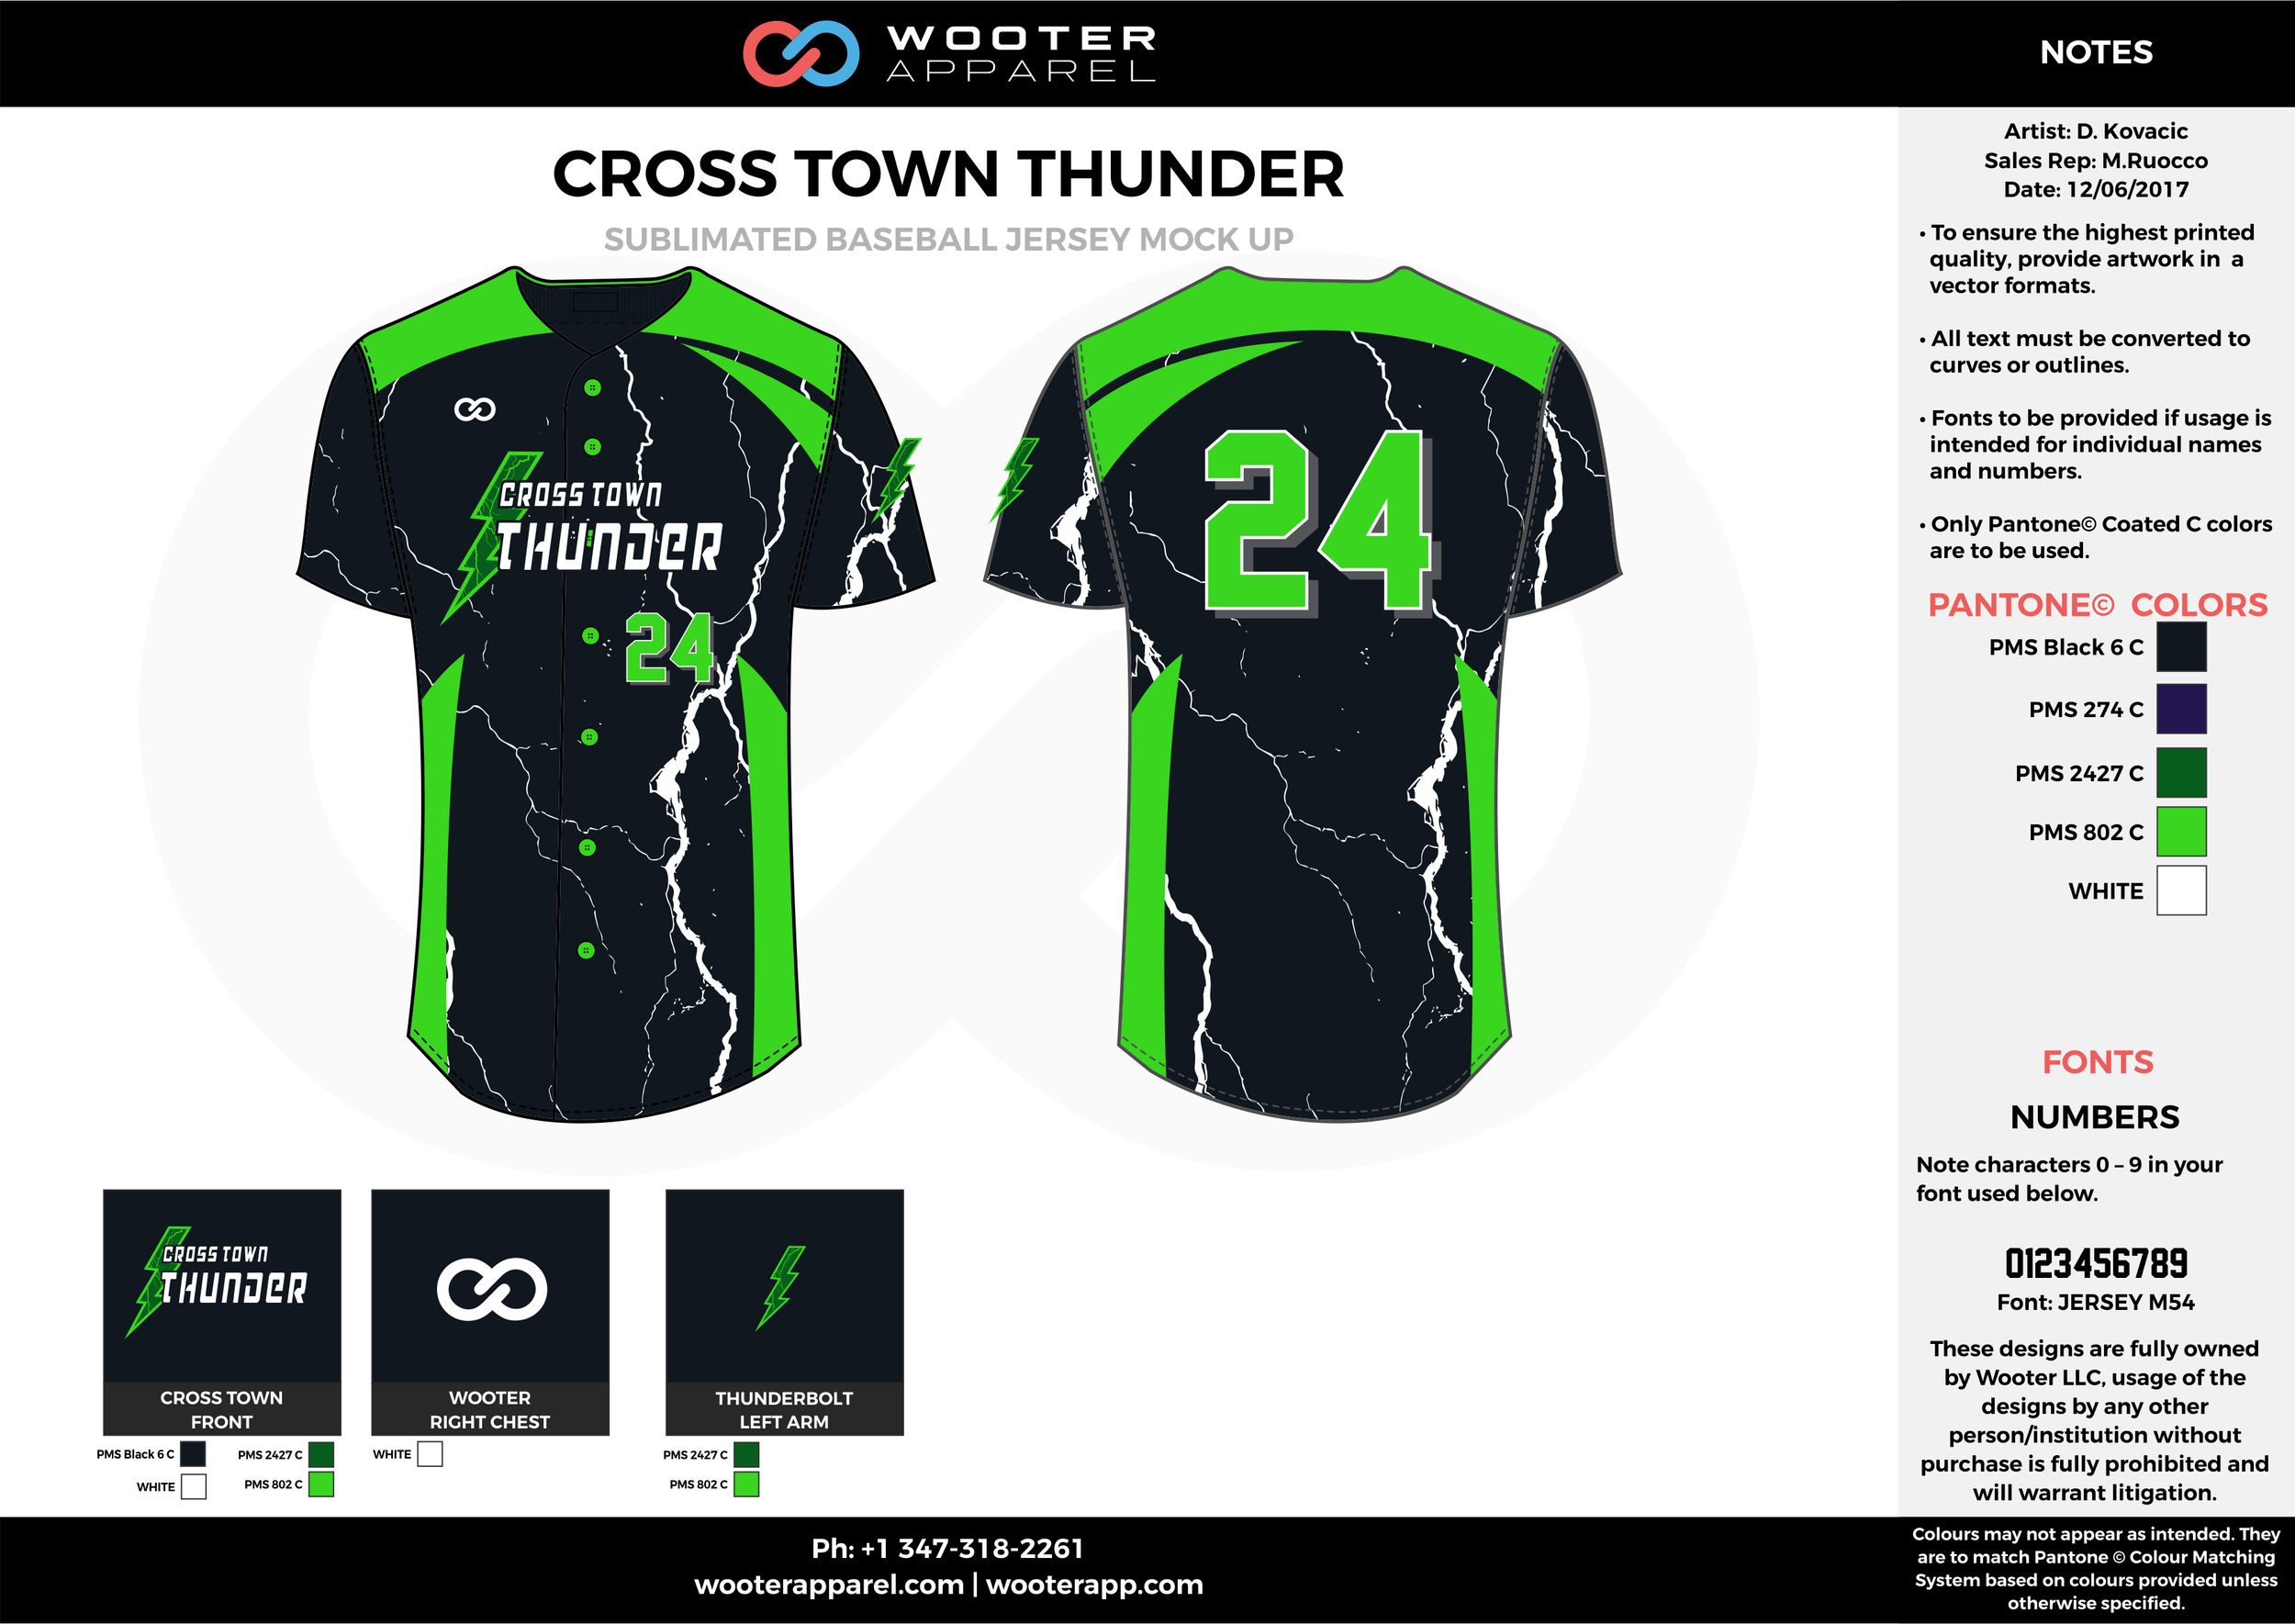 CROSS TOWN THUNDER black blue green white baseball uniforms jerseys tops